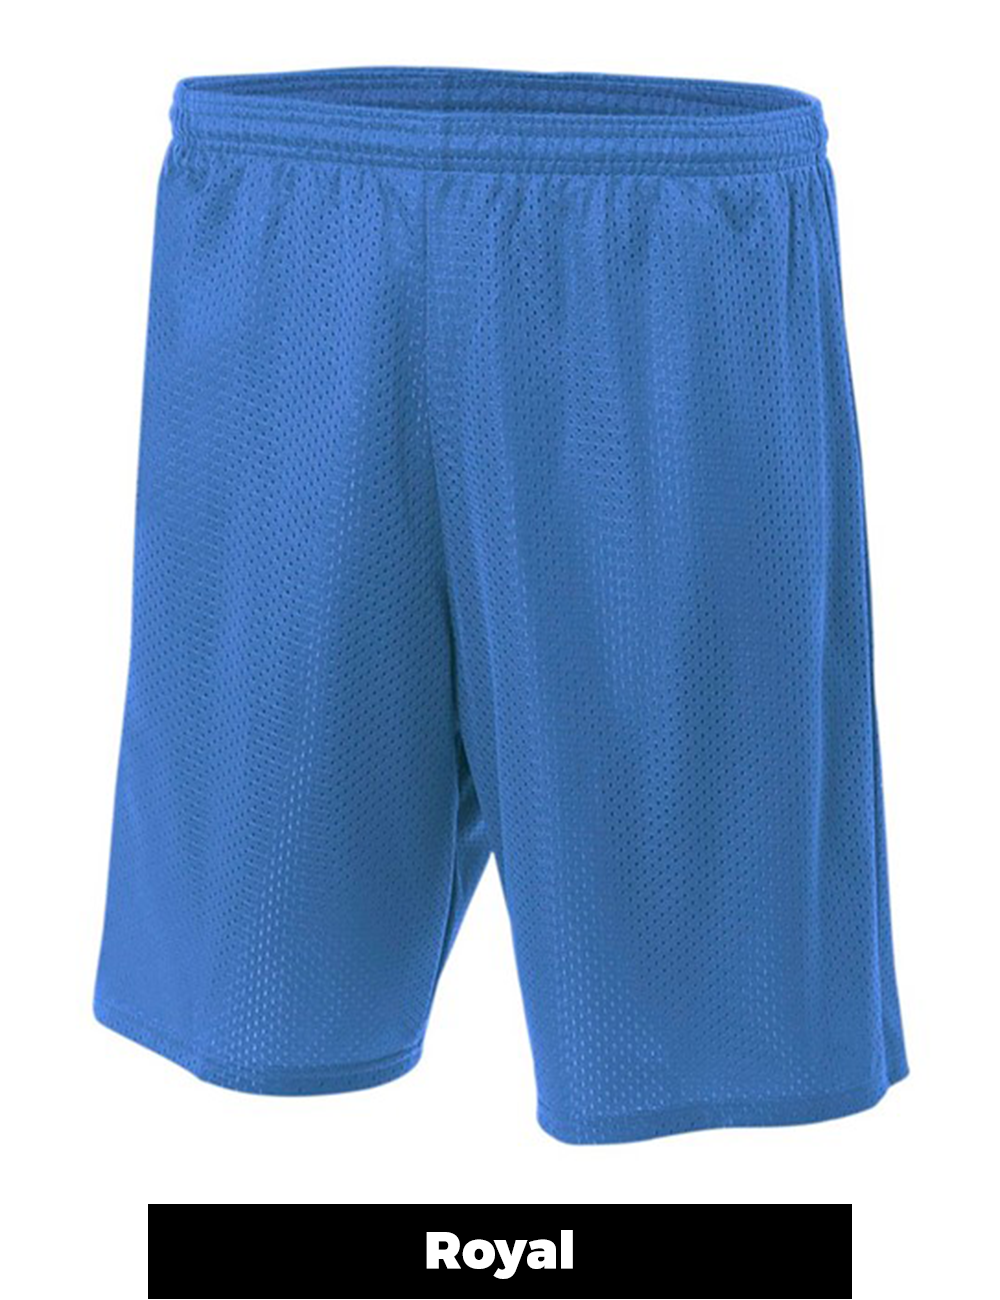 X-Small A4 Adult Moisture Wicking Tricot Performance Mesh Short Forest